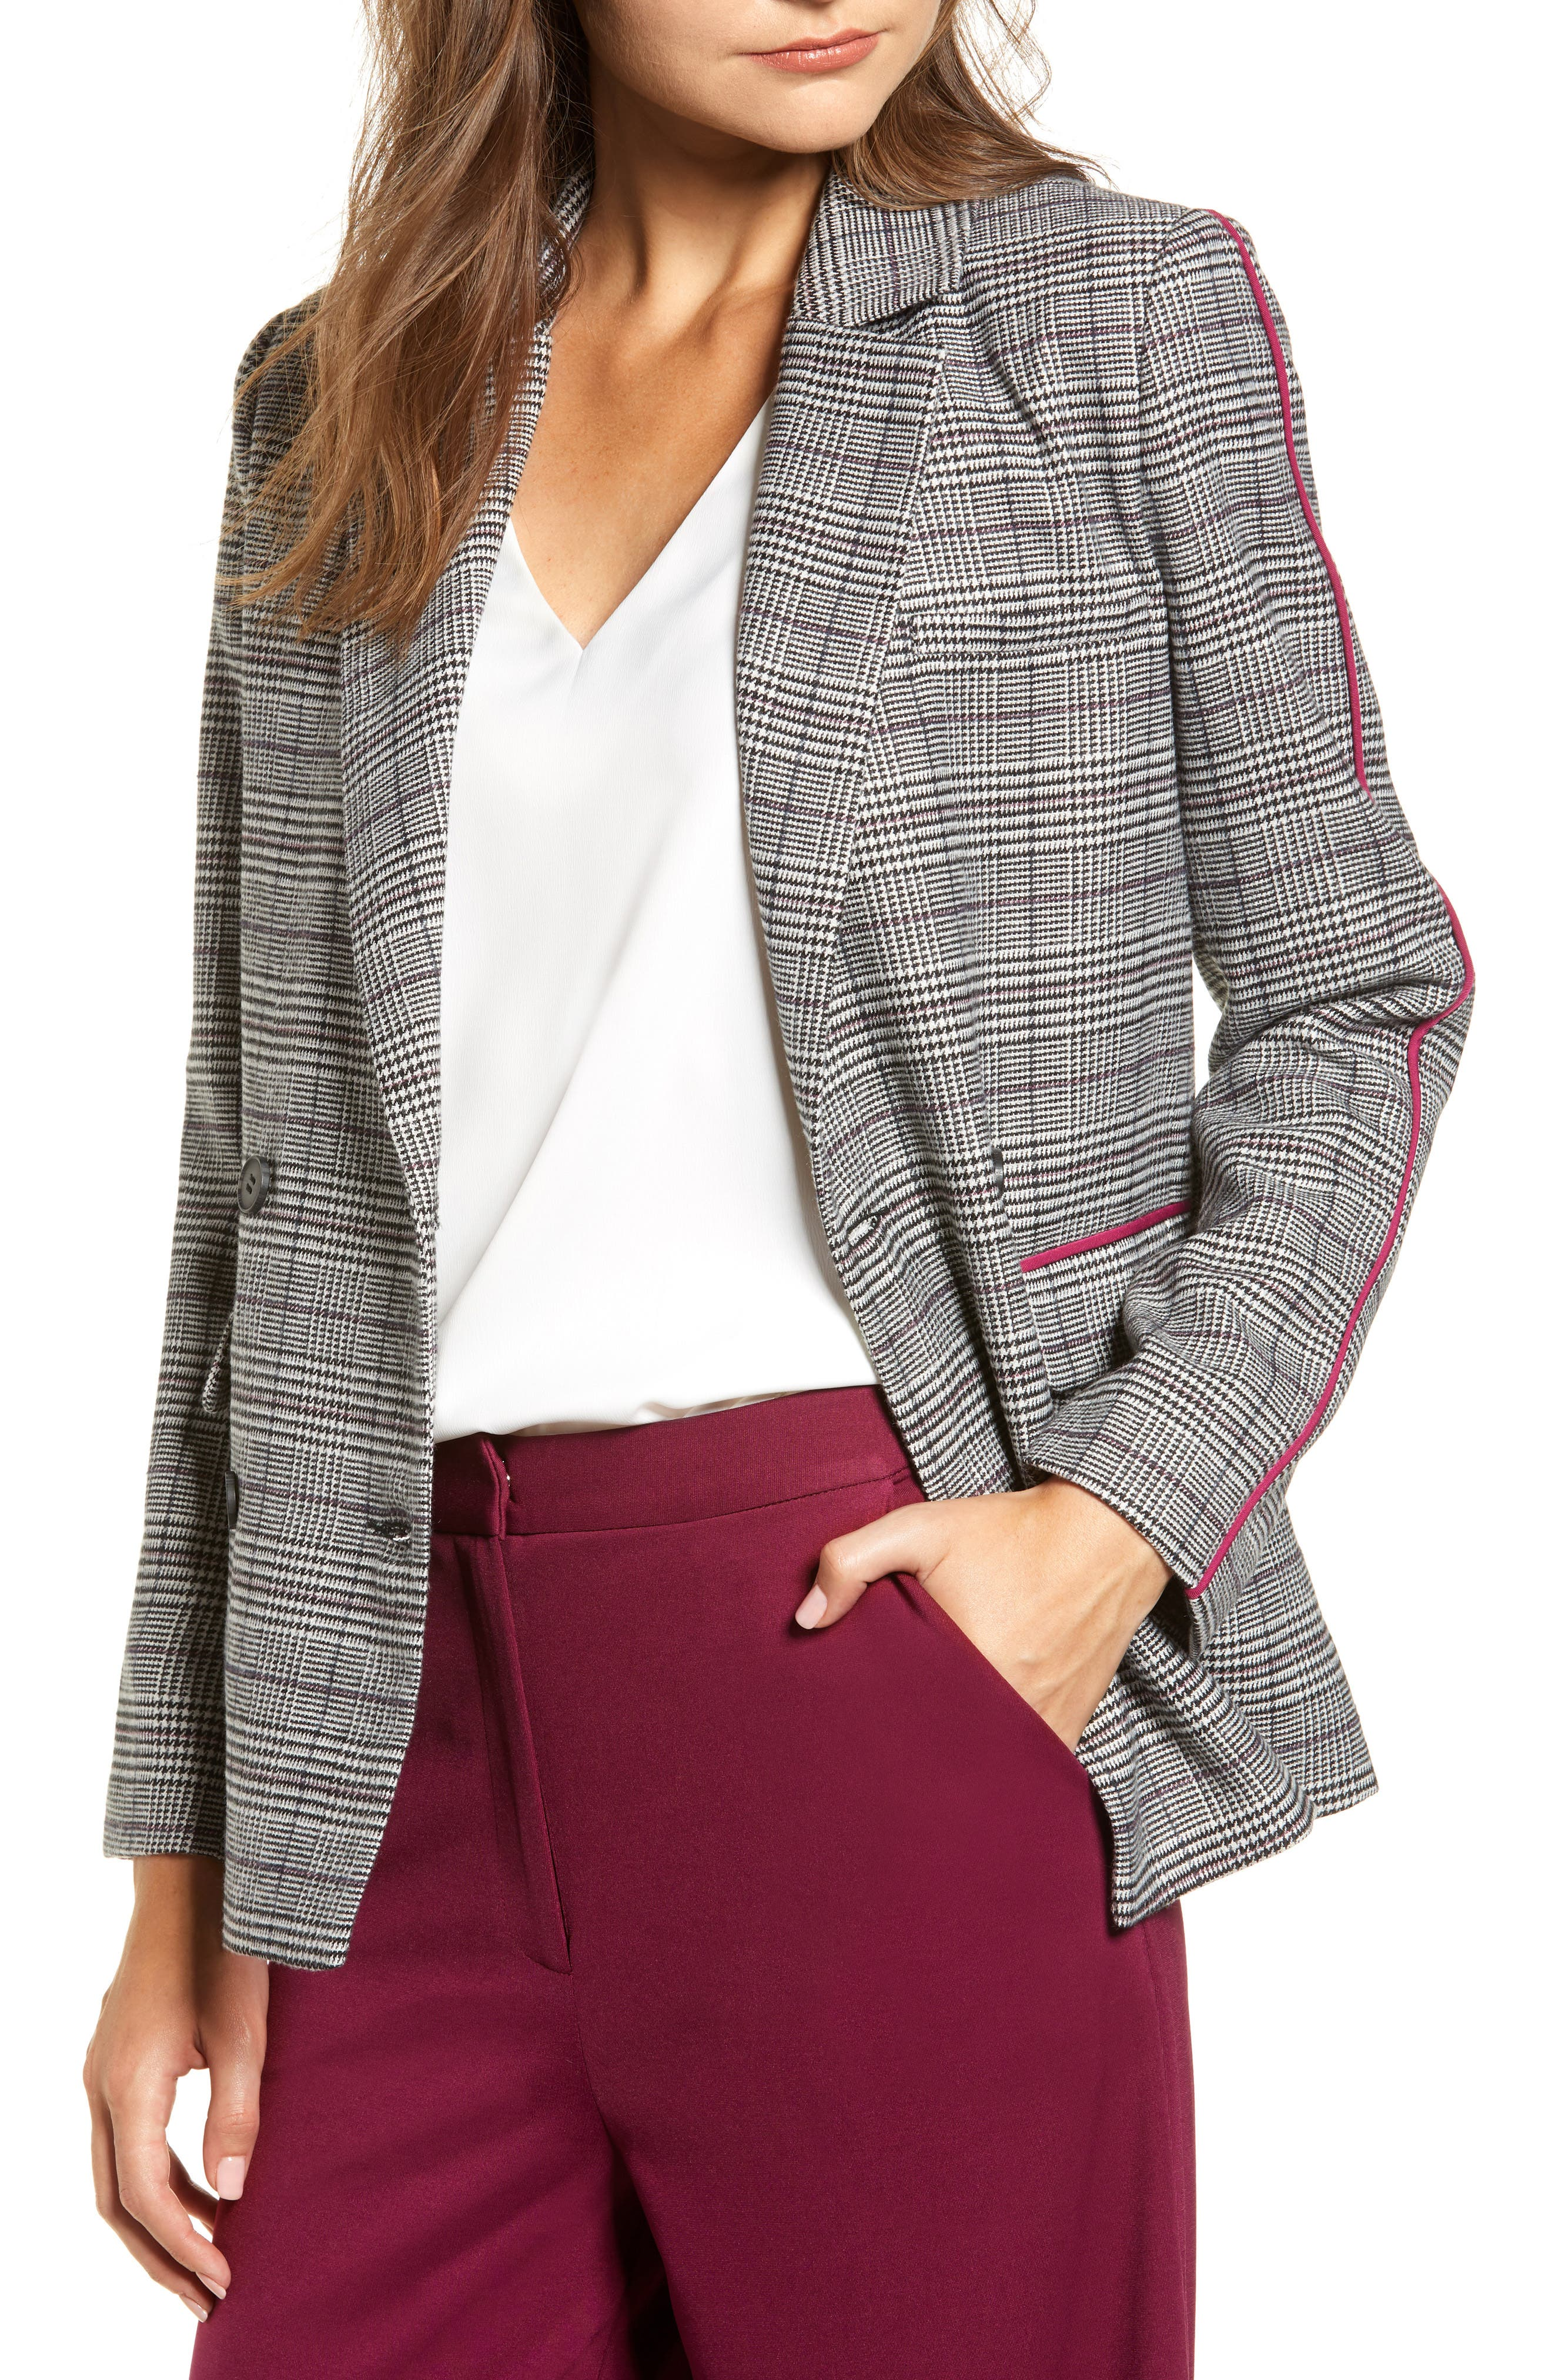 Chriselle Lim Bianca Piped Houndstooth Blazer,                         Main,                         color, GREY PLAID